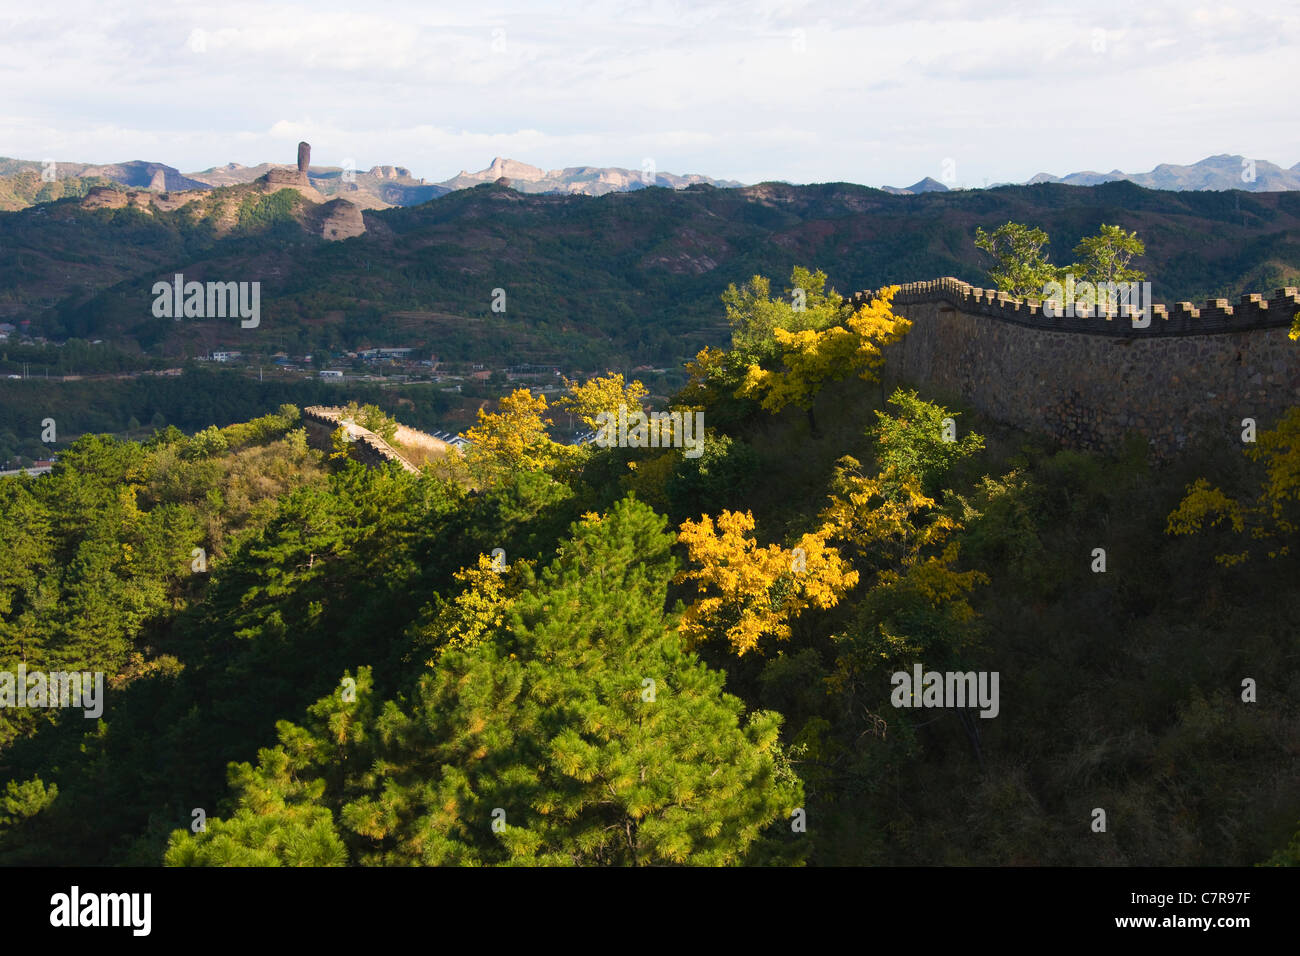 Walls of Chengde Mountain Resort and its Outlying Temples, Hebei Province, China - Stock Image